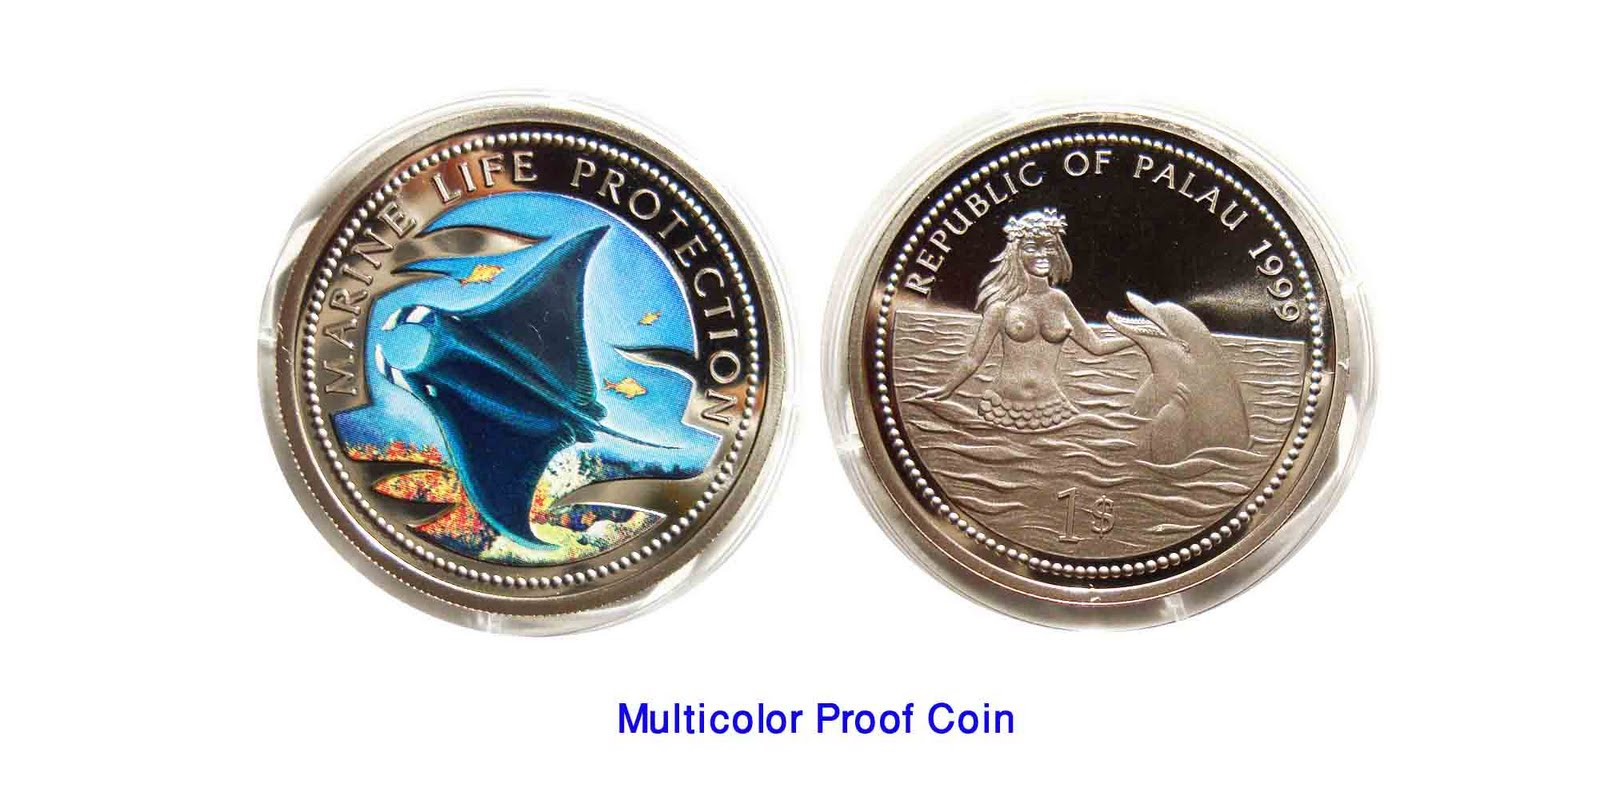 Palau 1999 German East Africa 5 Dollars Silver Coin,Proof